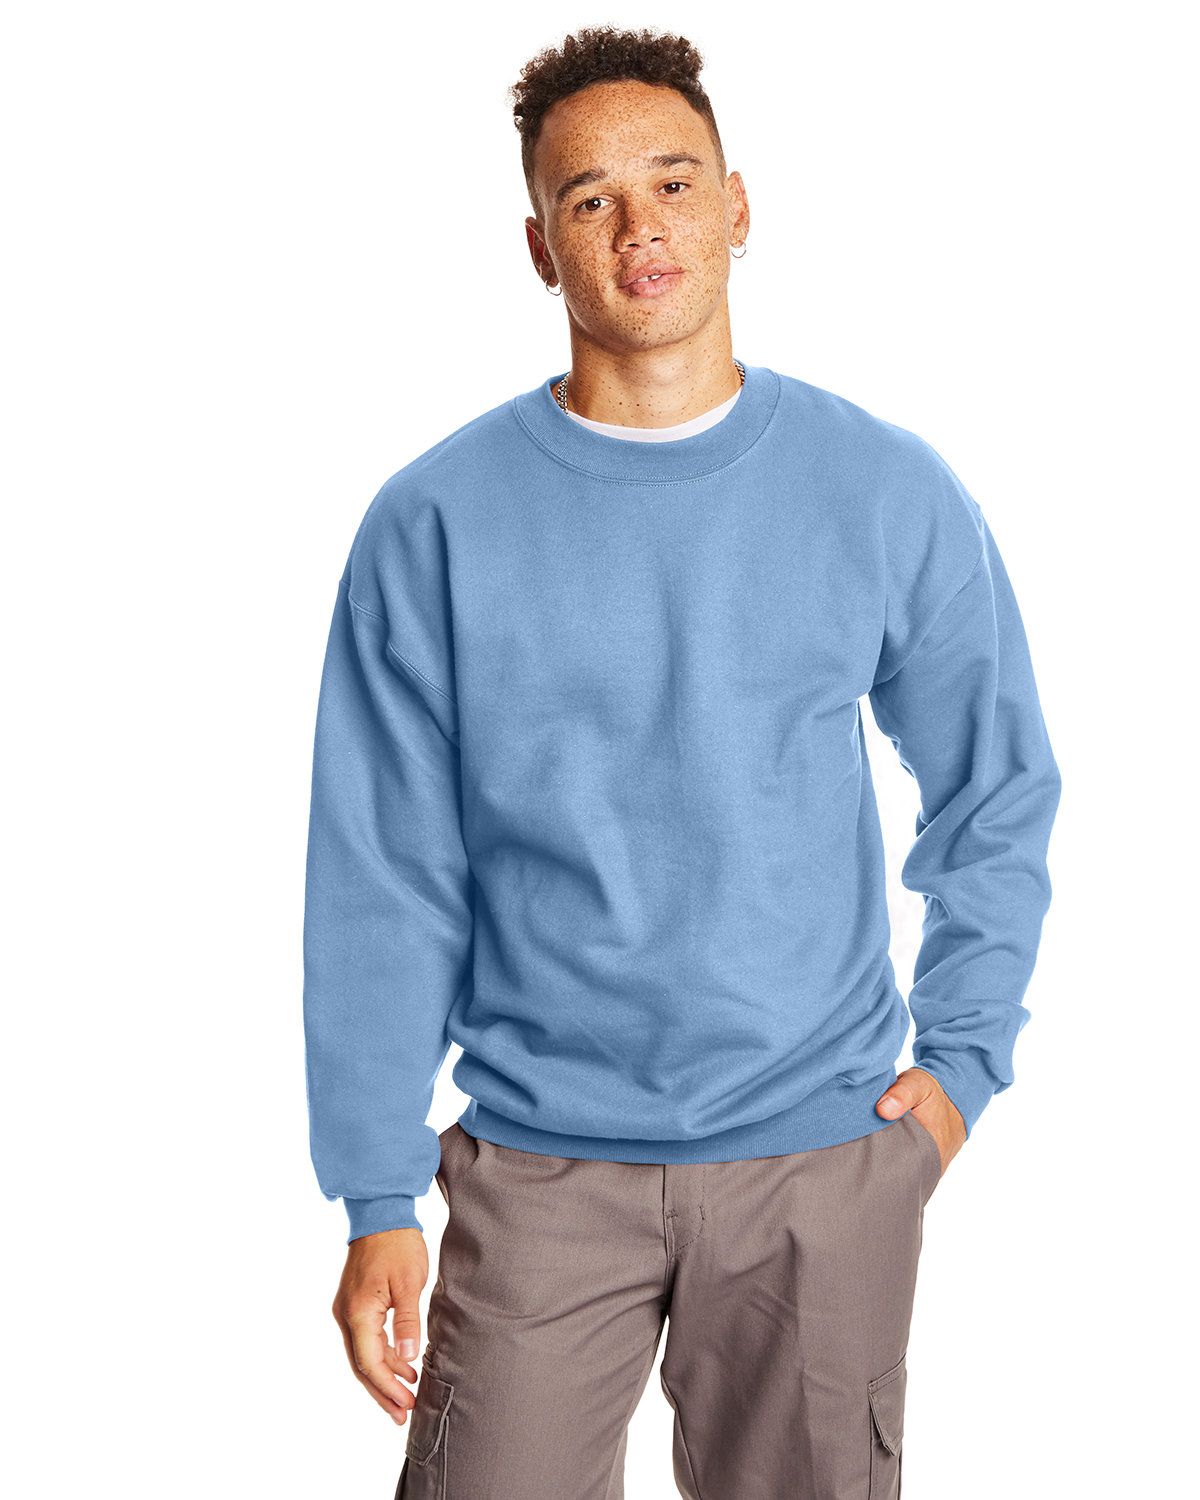 Hanes Adult Ultimate Cotton® 90/10 Fleece Crew LIGHT BLUE